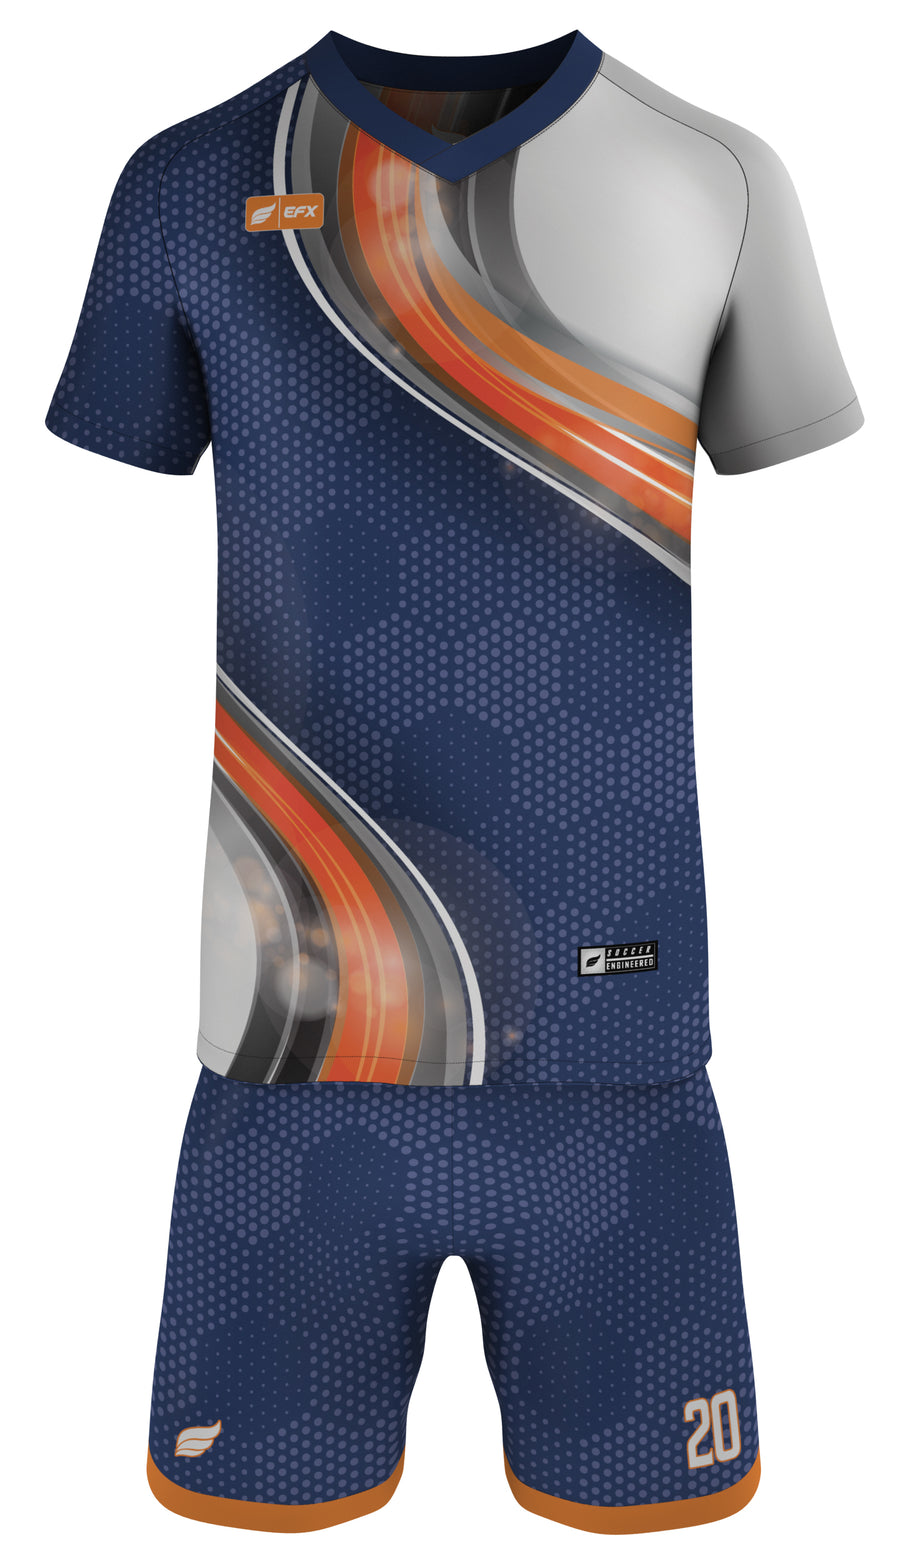 EFX Soccer Uniform - Abstracx